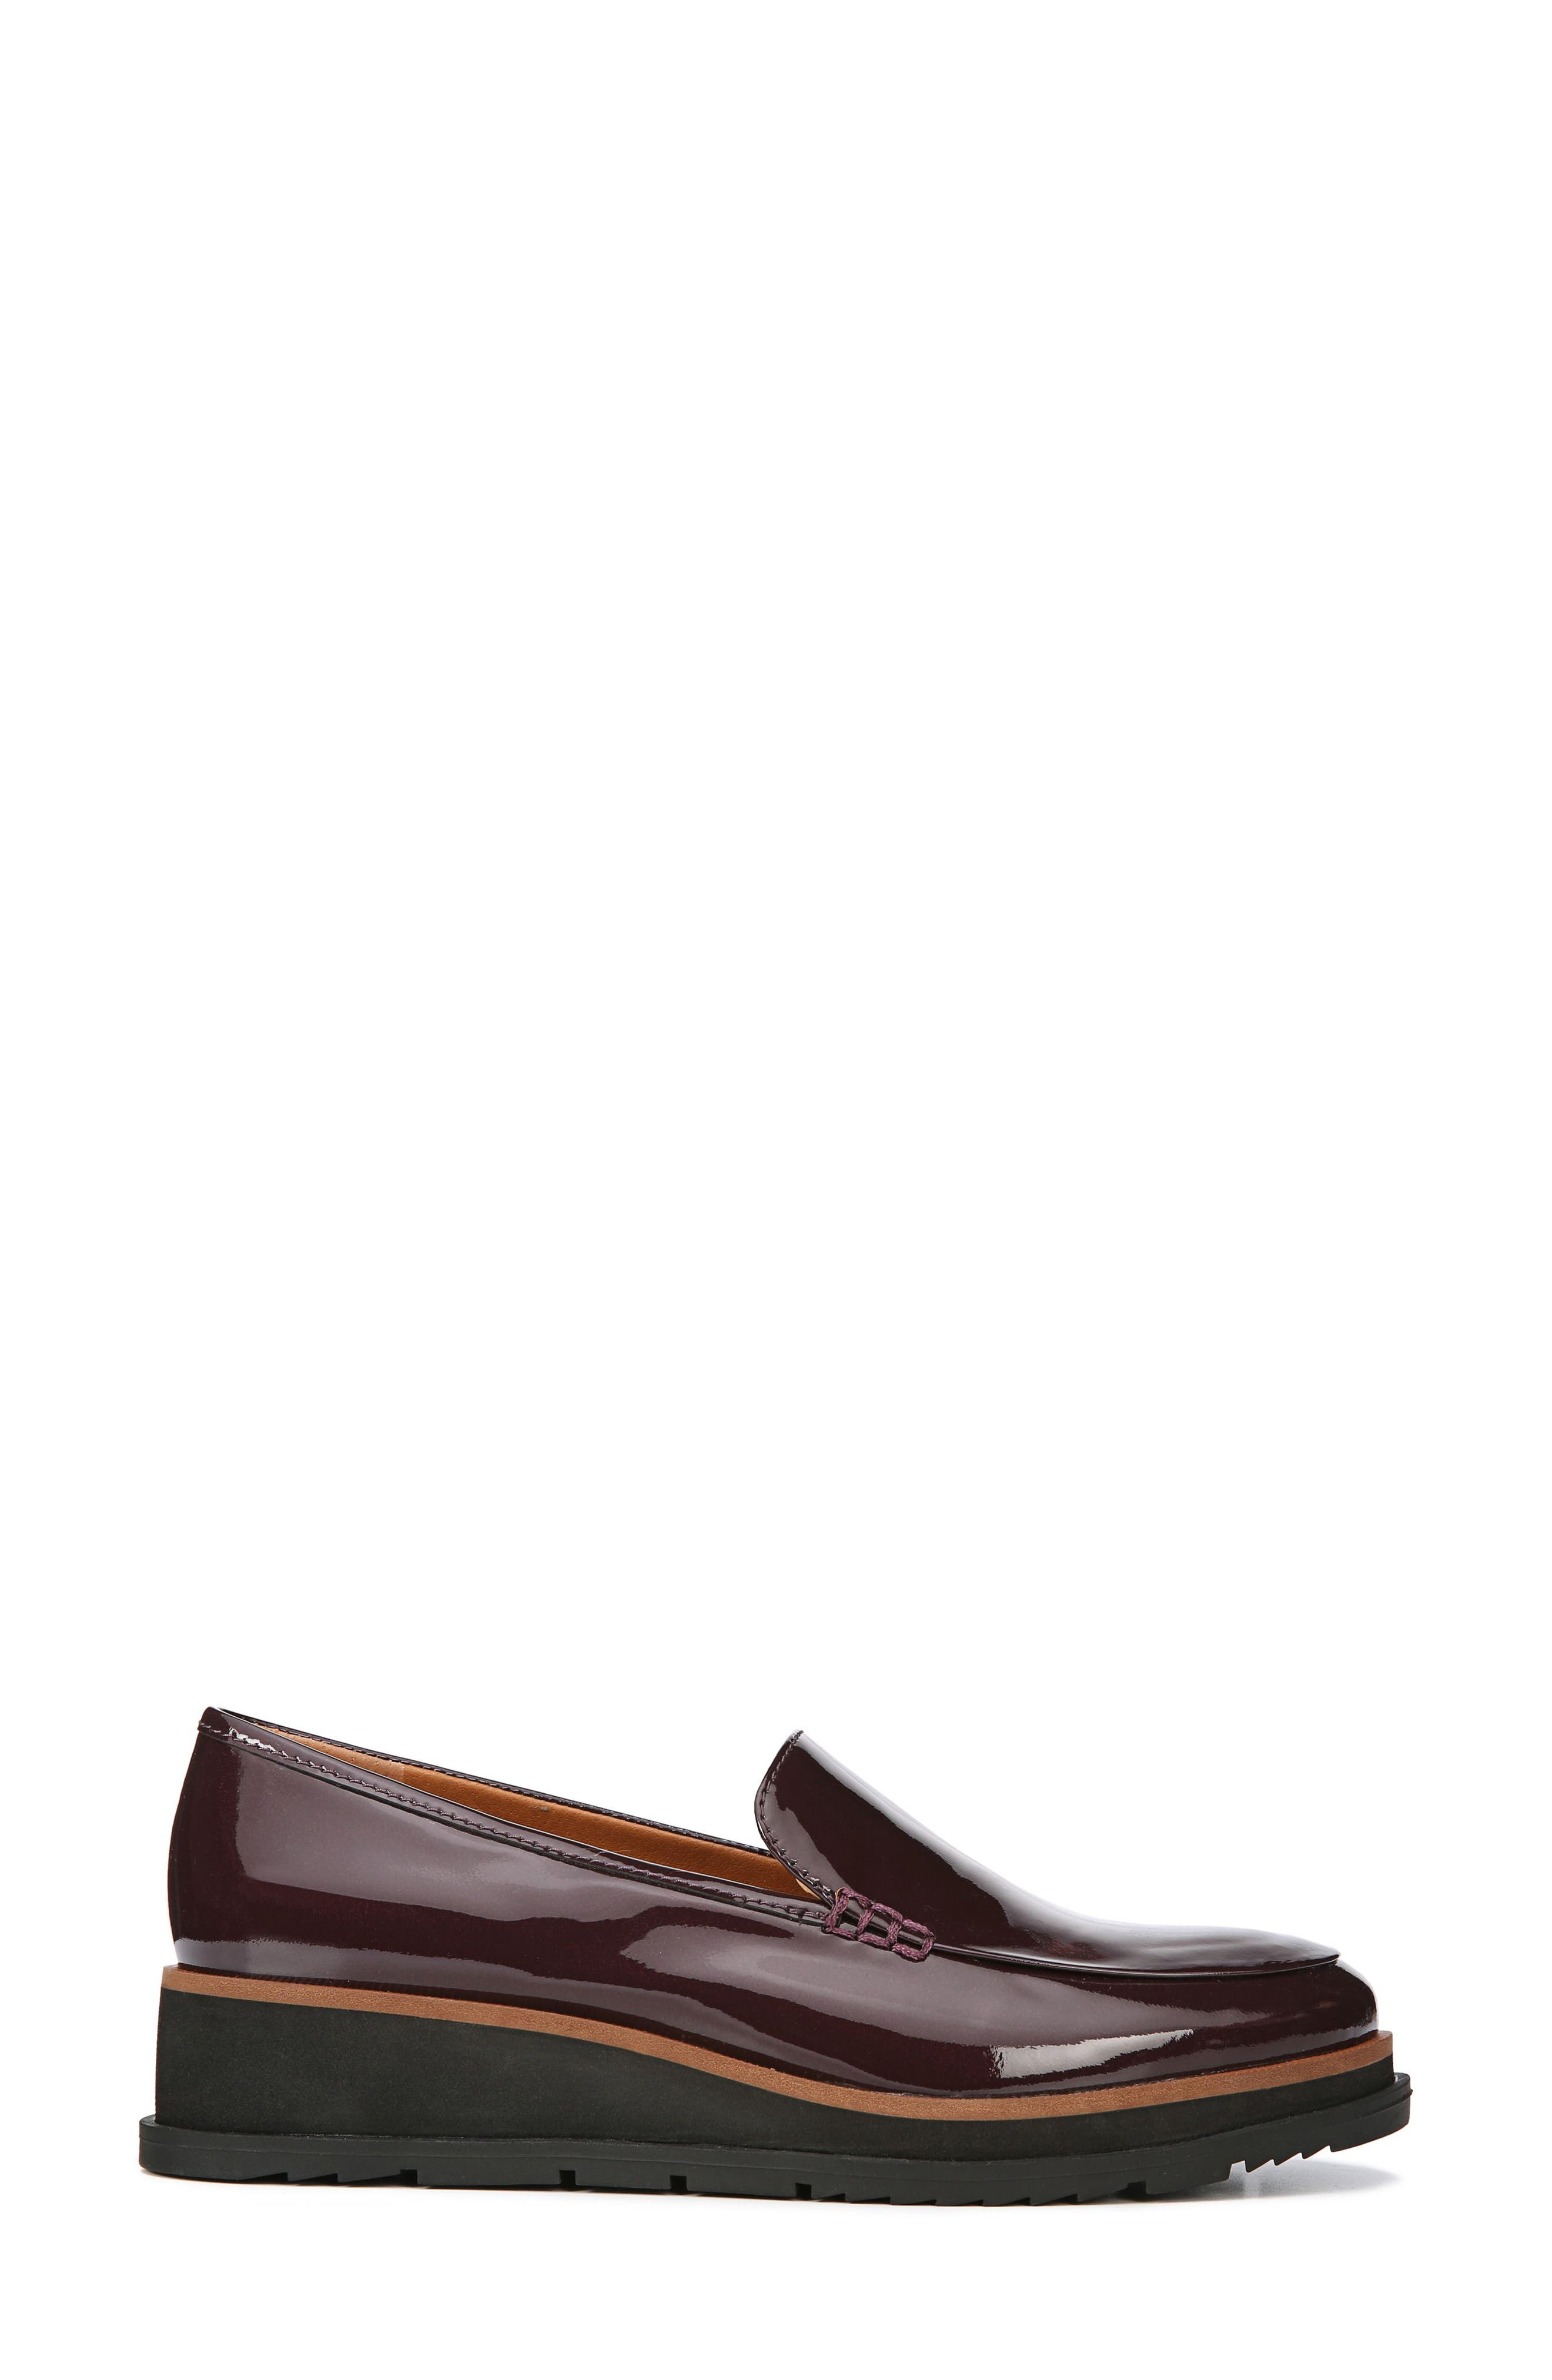 Alternate Image 3  - SARTO by Franco Sarto Ayers Loafer Flat (Women)